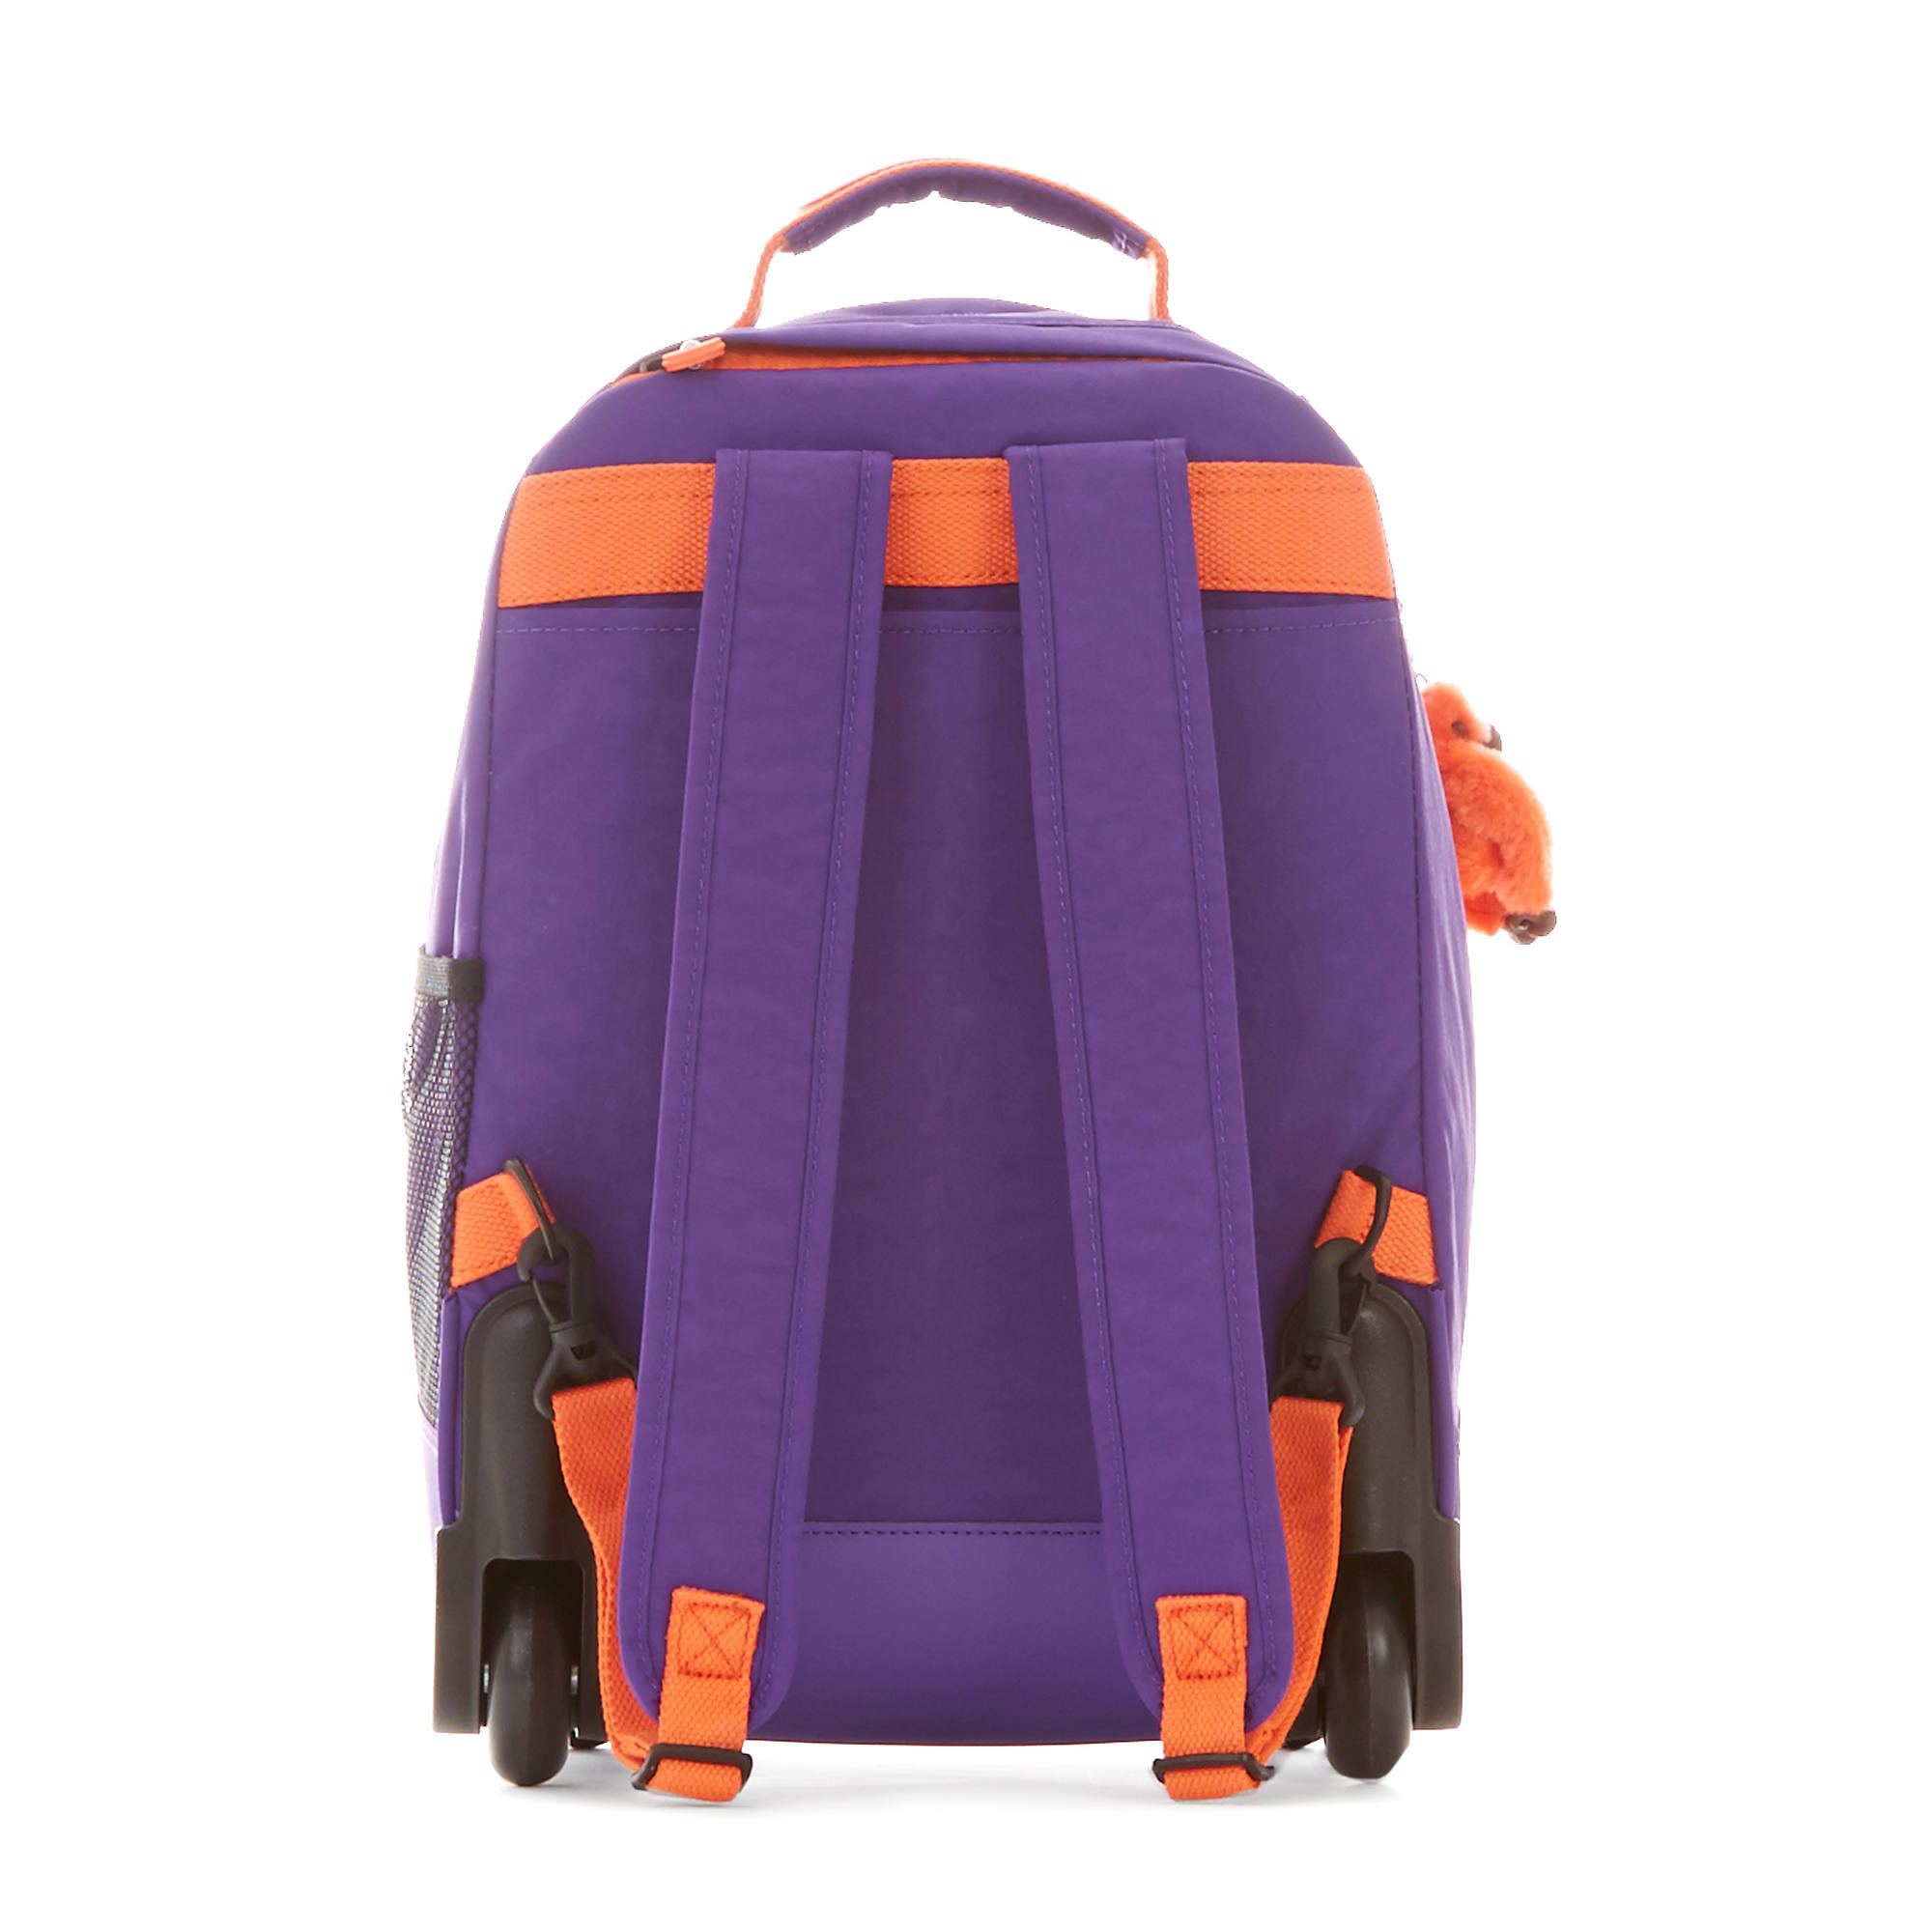 Sanaa Rolling Backpack - Violet Purple | Kipling